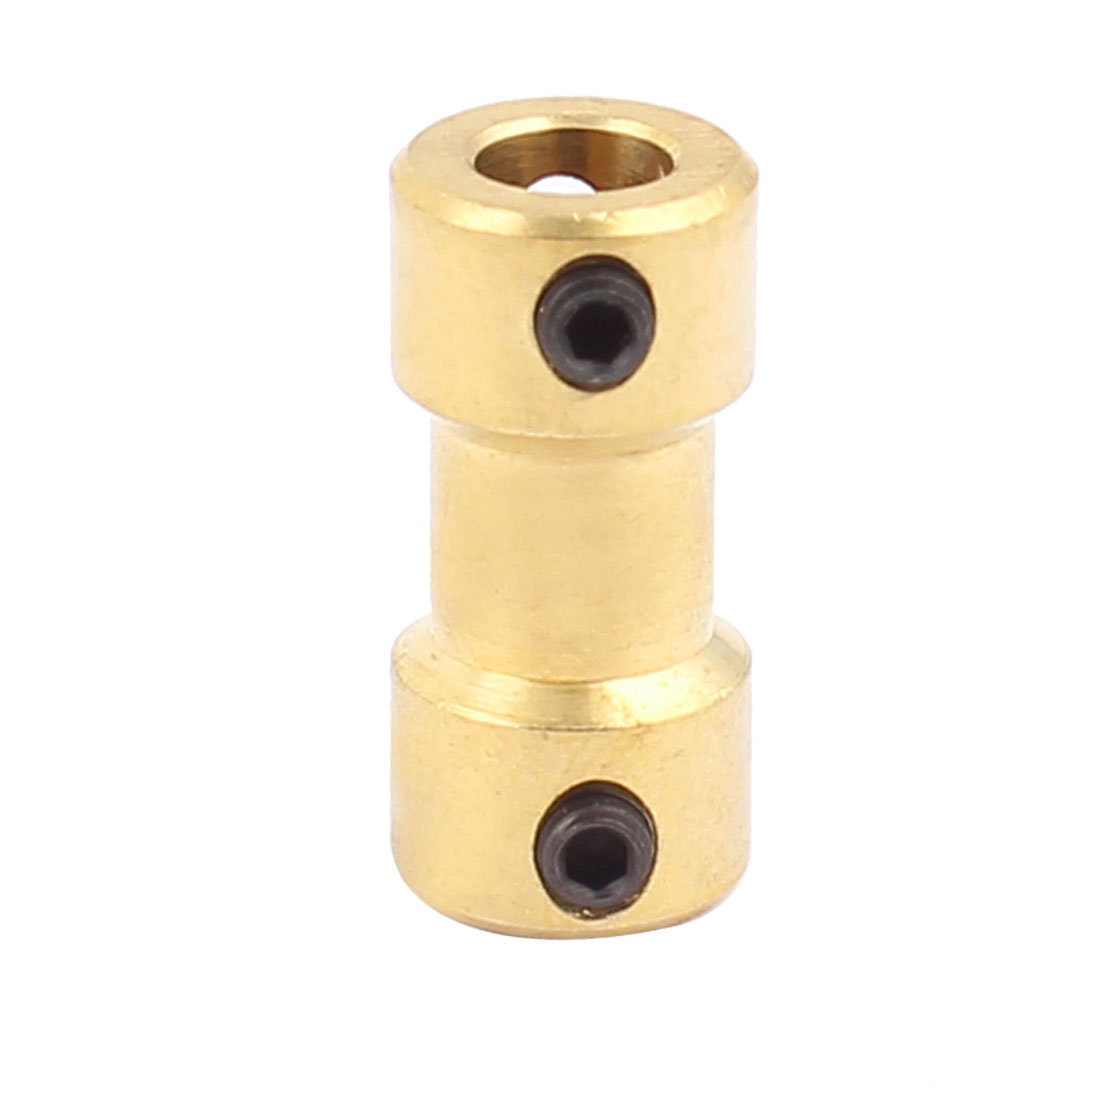 3.17mm to 5mm Copper DIY Motor Shaft Coupling Joint Connector for Electric Car Toy